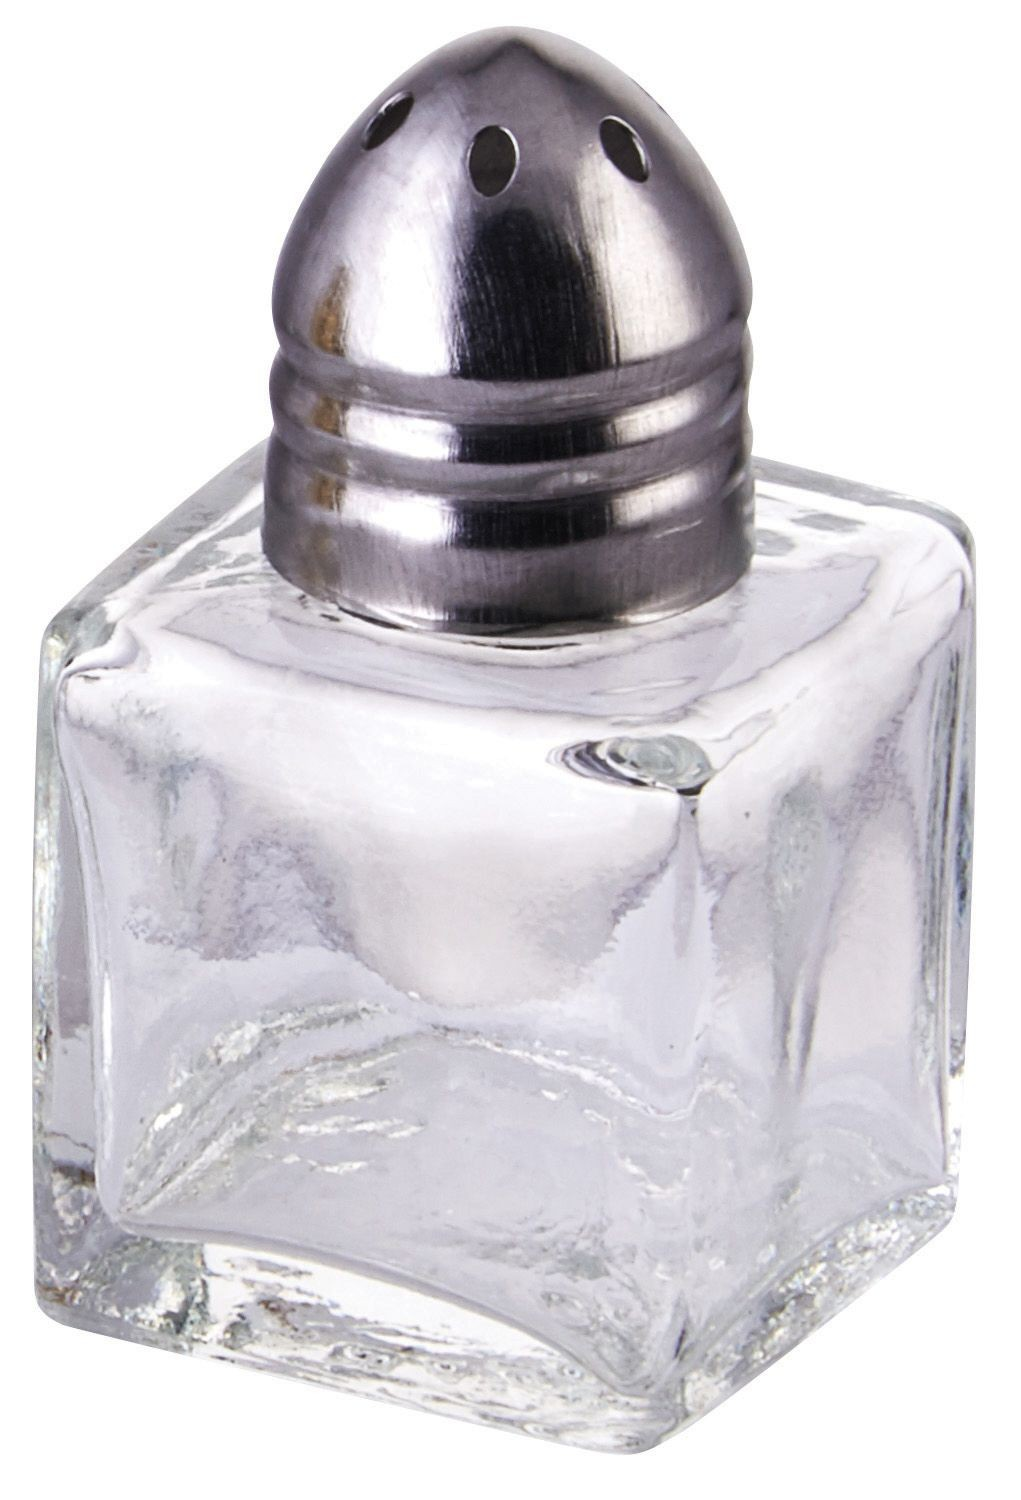 Winco G-300 Square Shaker 1/2 oz., with Chrome-Plated Top